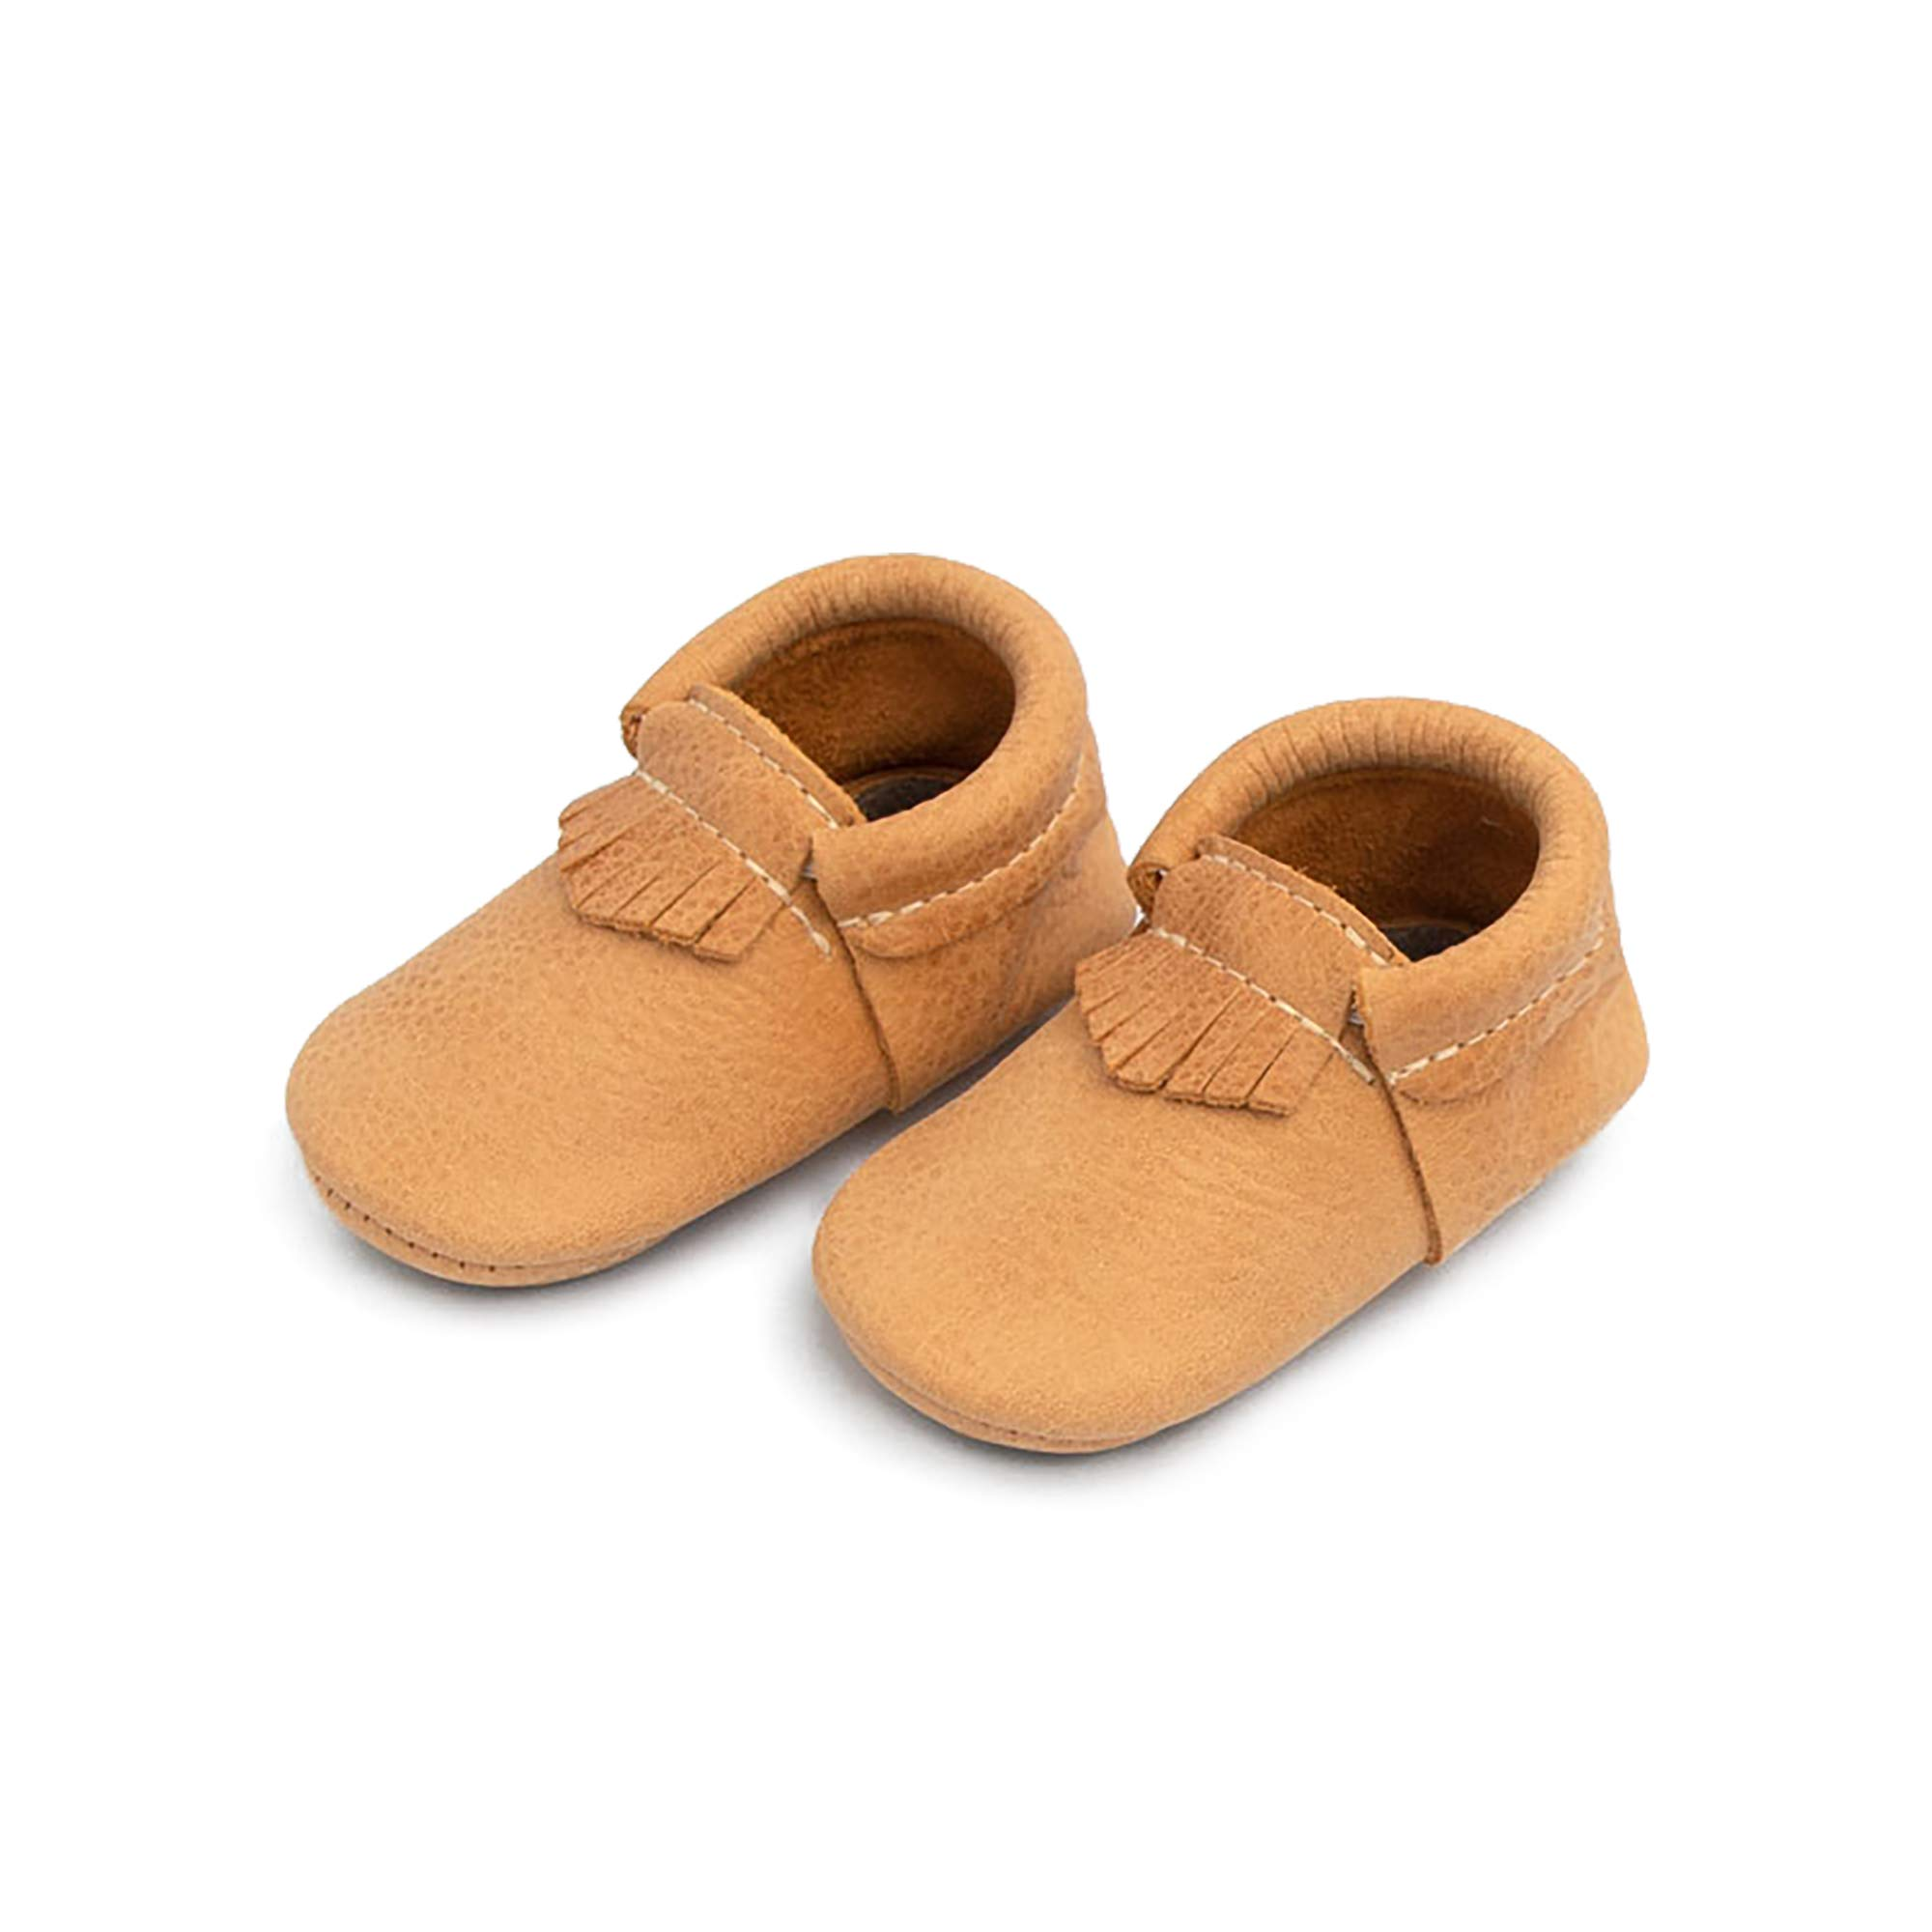 Freshly Picked - Rubber Mini Sole Leather City Moccasins - Toddler Girl Boy Shoes - Size 7 Beehive State Tan by Freshly Picked